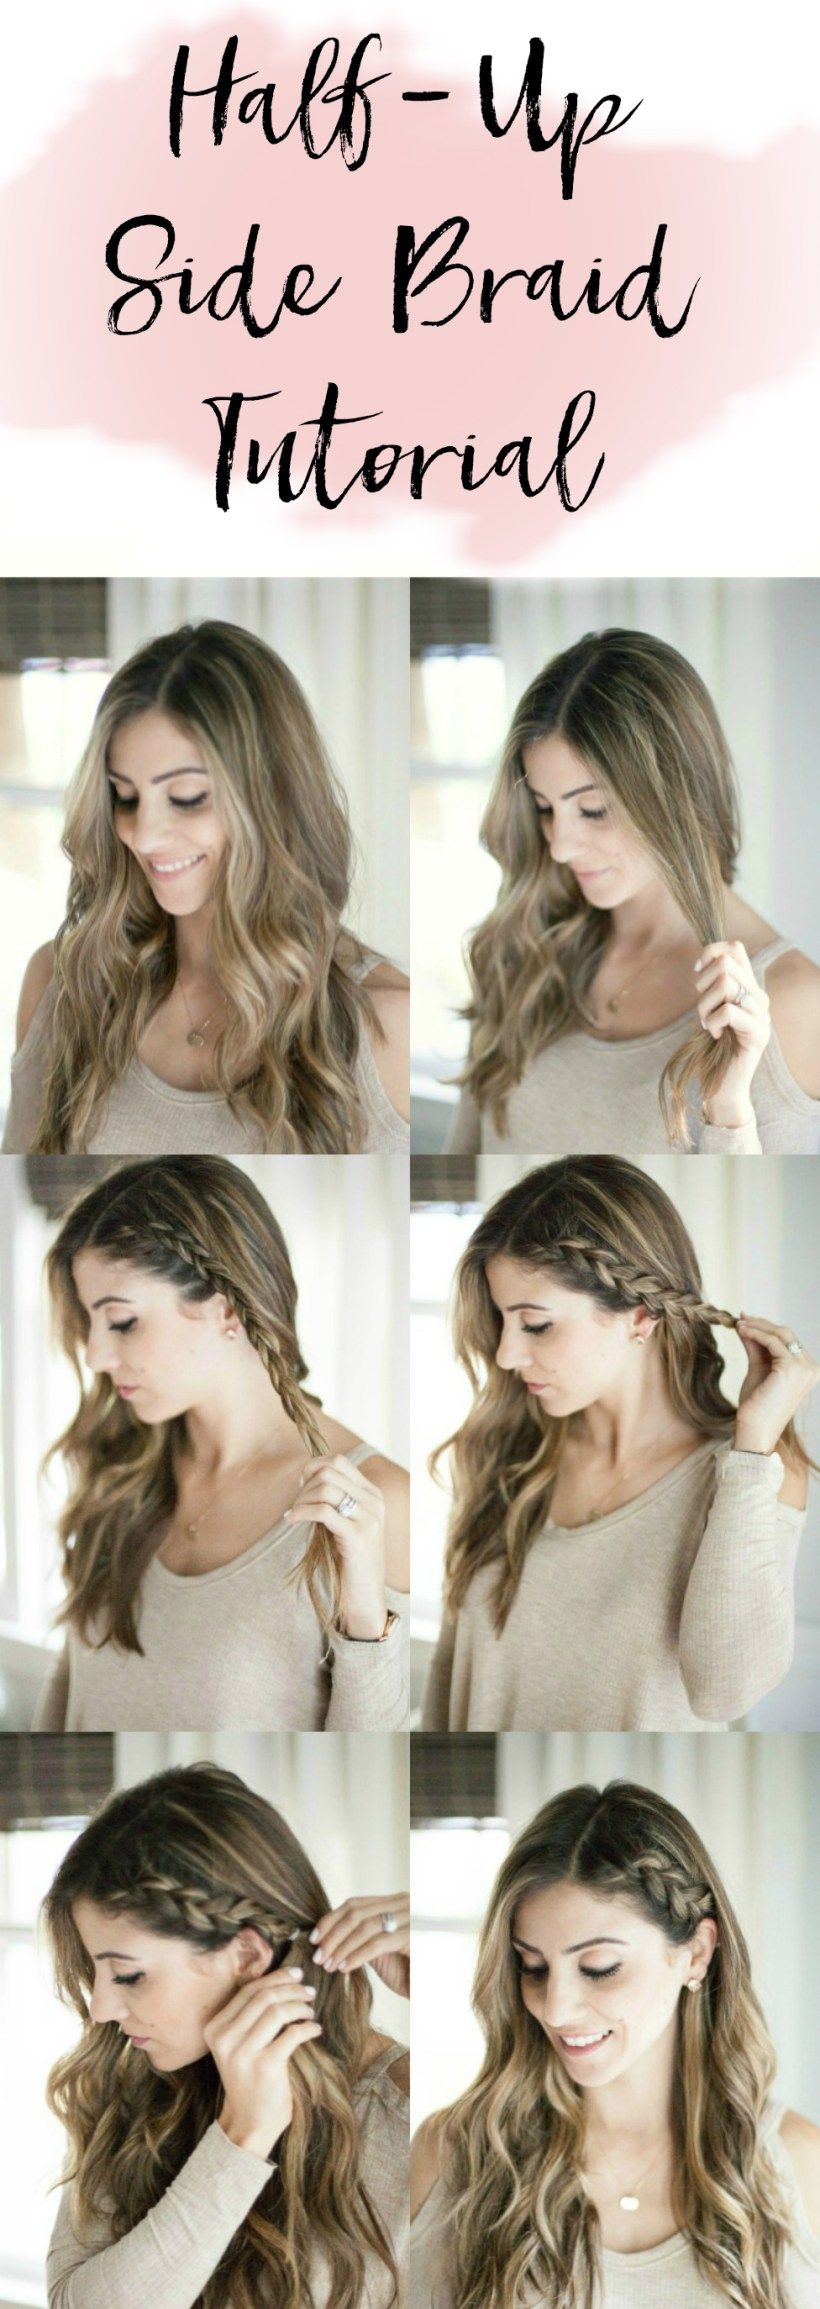 A simple half up side braid hair tutorial perfect for adding a